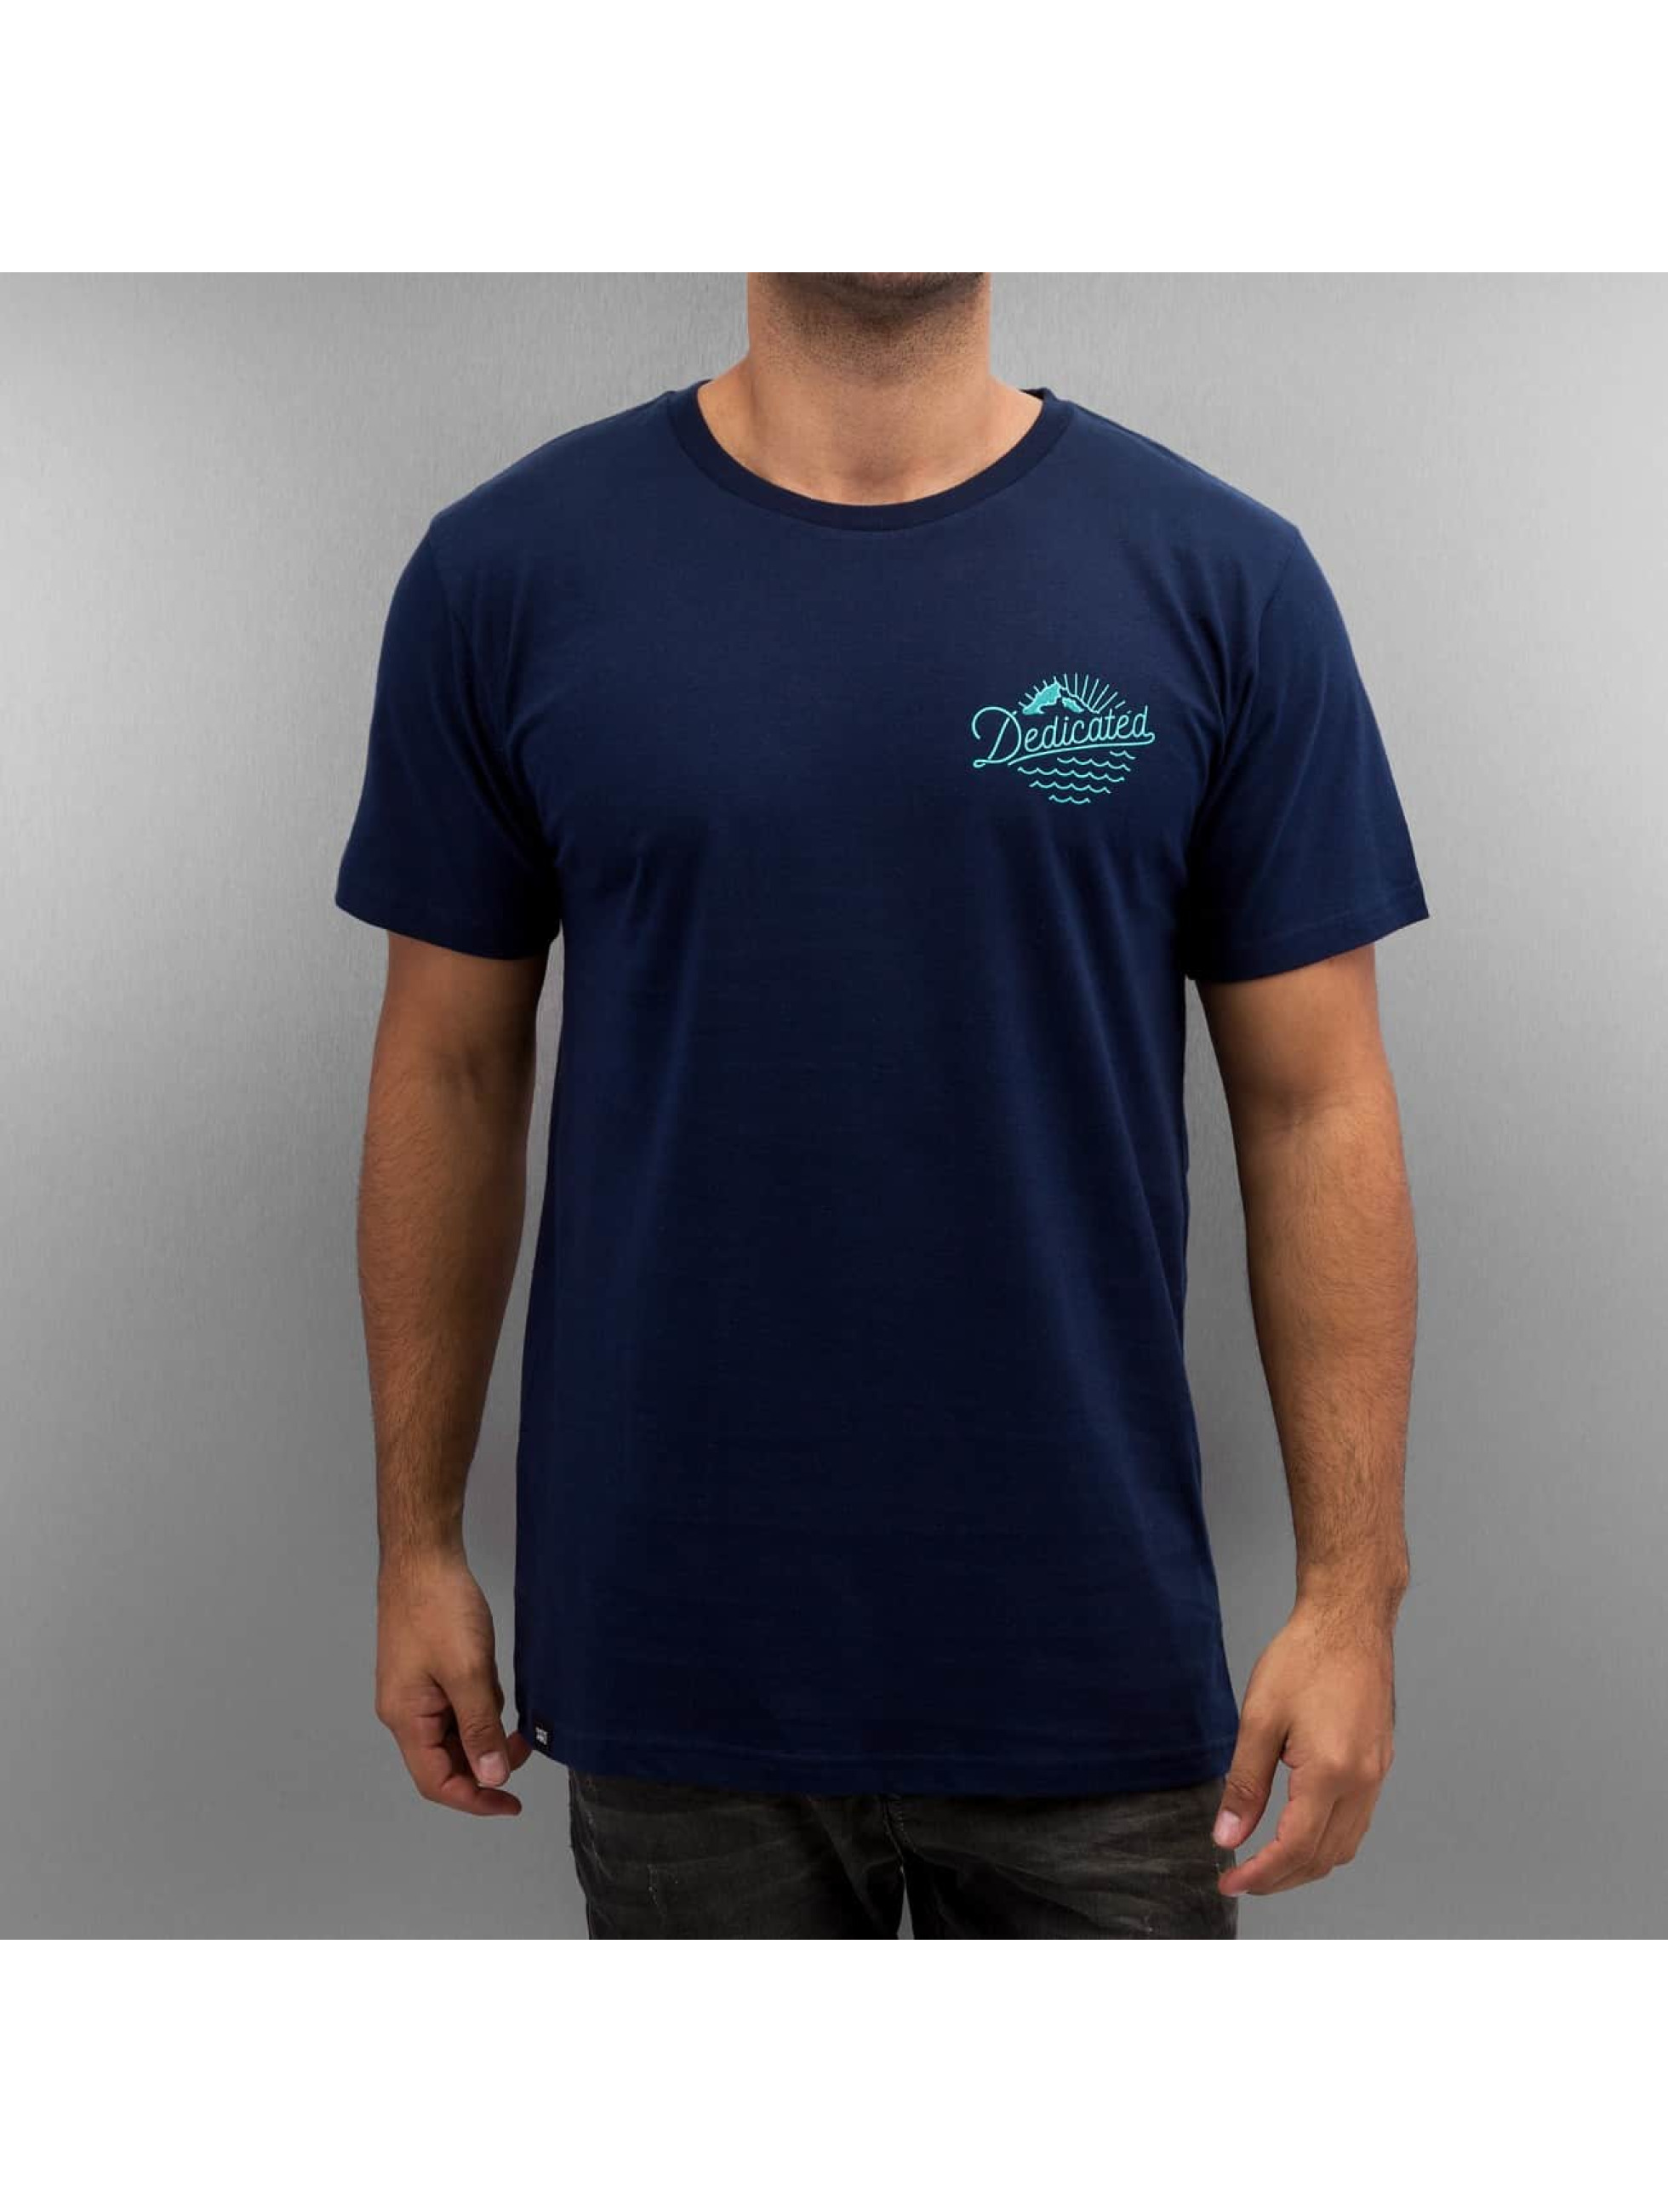 DEDICATED T-Shirt Good Vibes blau